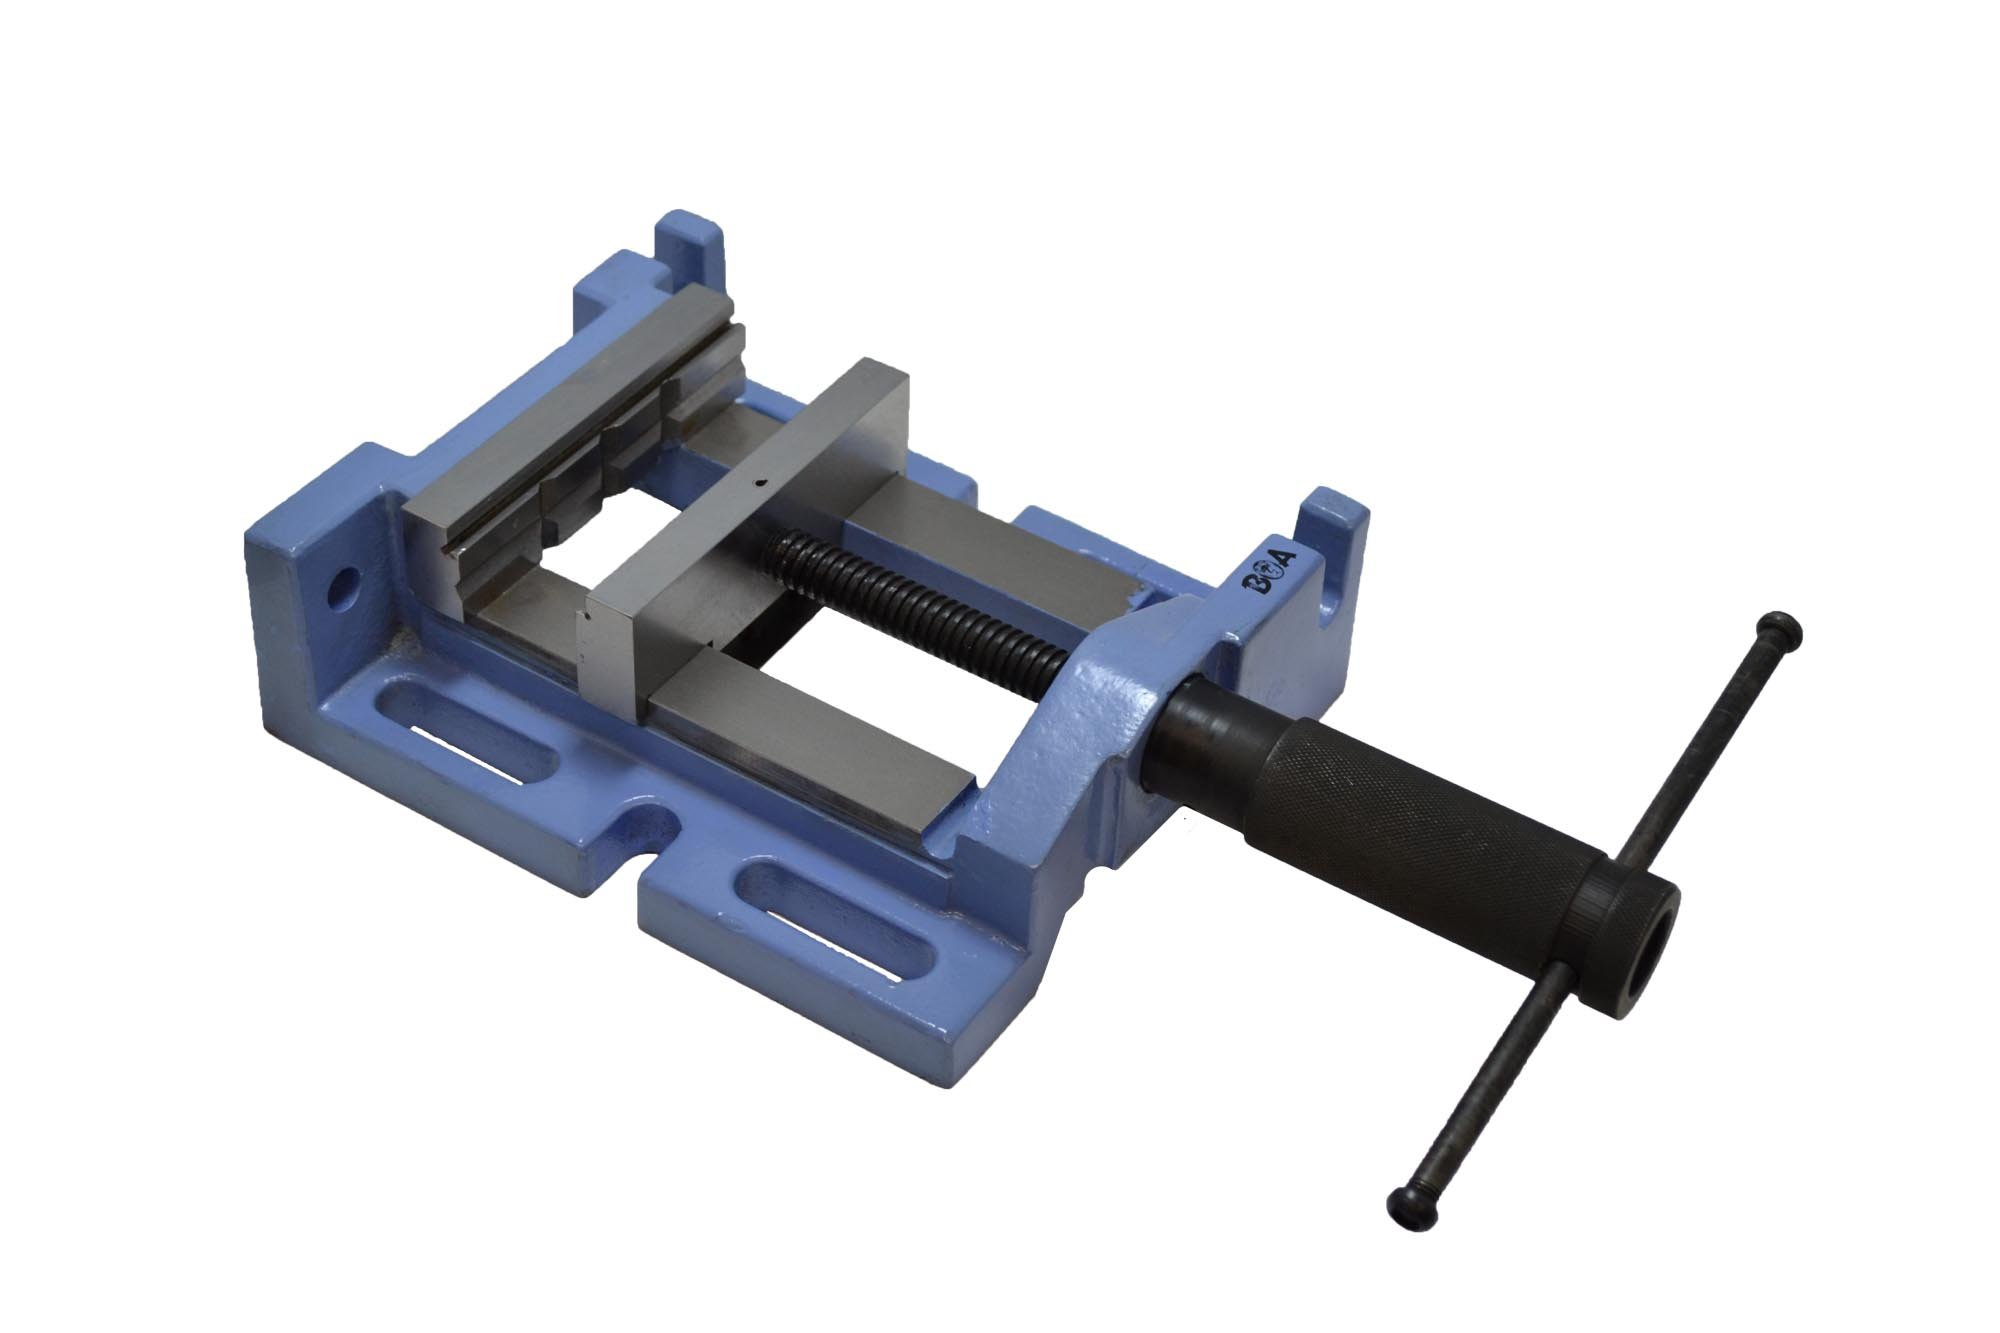 Boa 110157 Precision 3 Way Drill Press Vise Uni-Grip, 5''